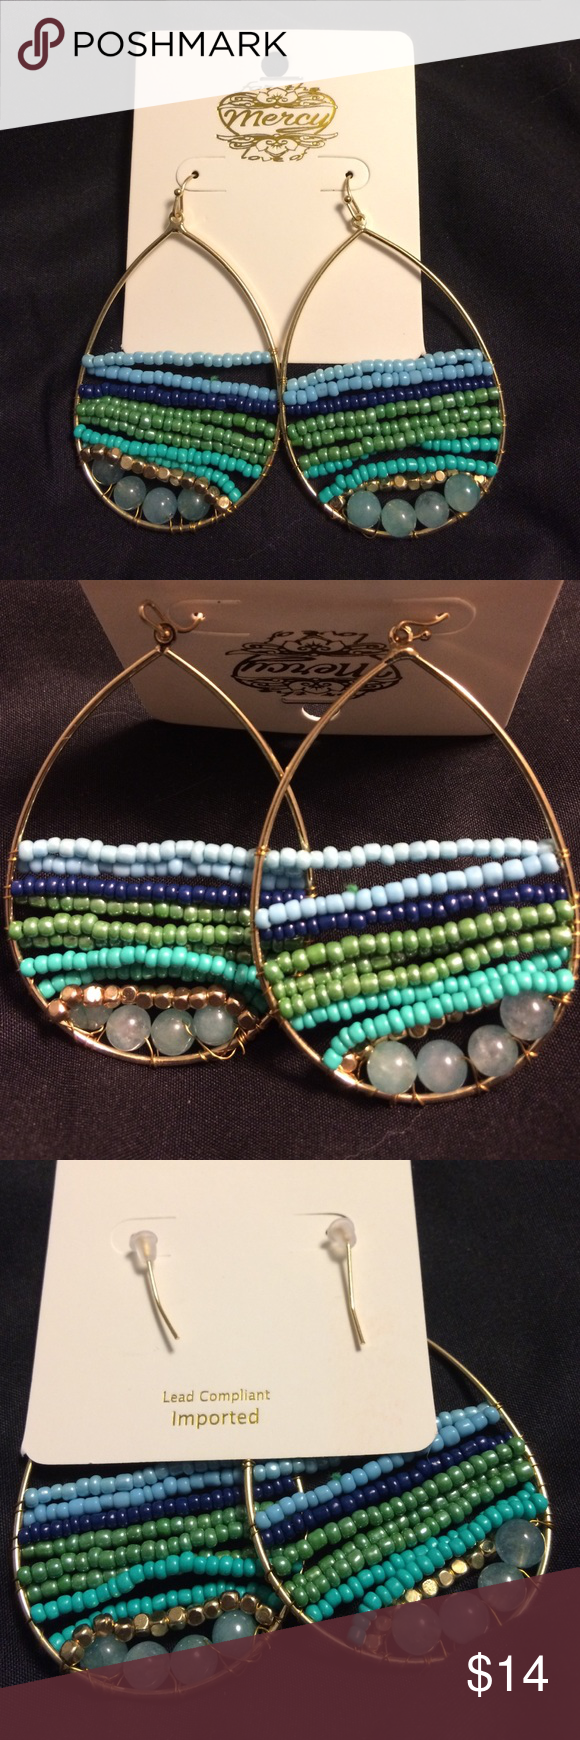 Mercy earrings. Brand new. Never worn. BRAND NEW beaded hoops. Only taken out of package to take a picture.  Never worn. Jewelry Earrings